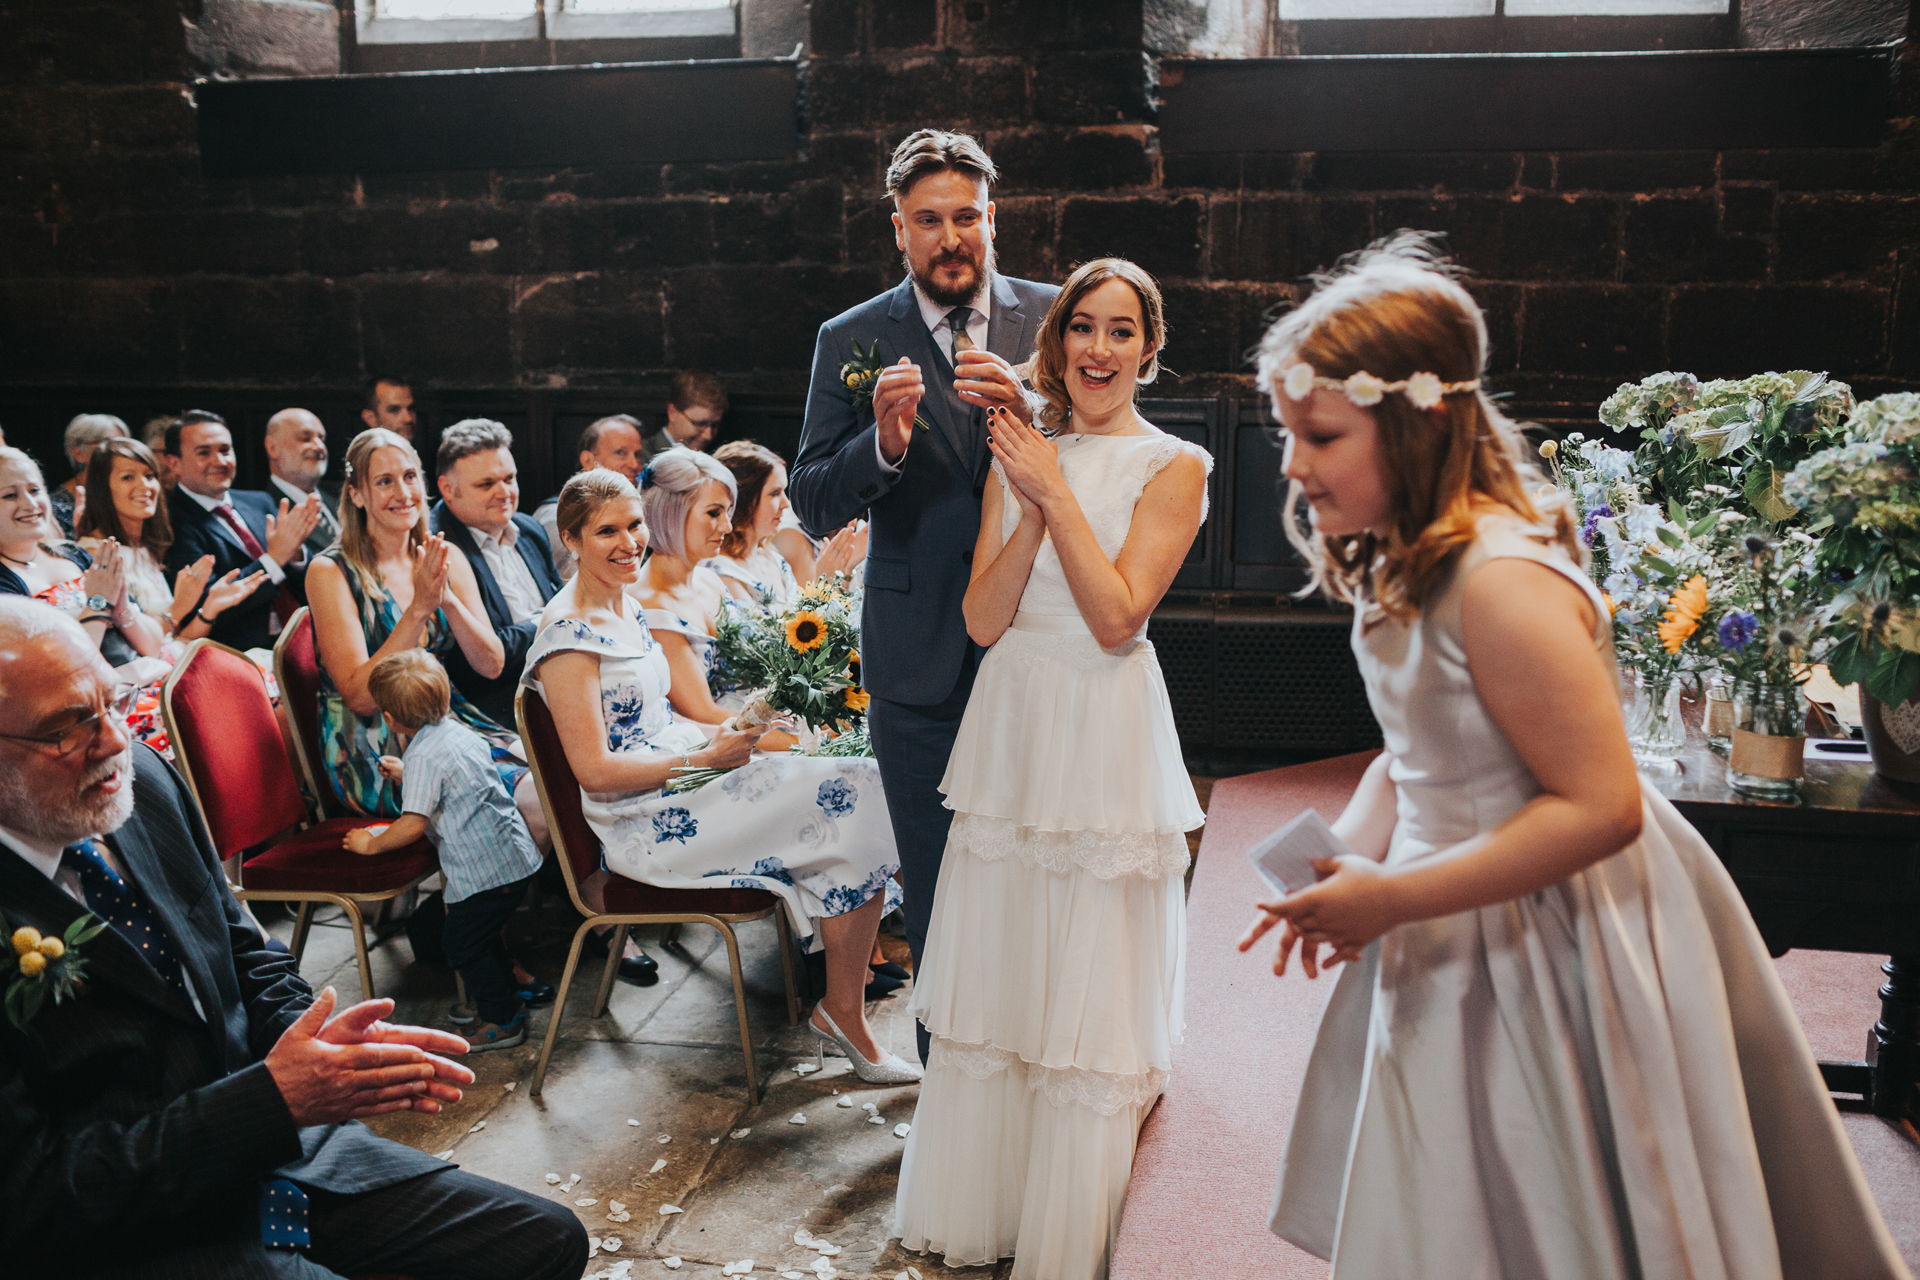 Bridesmaid jumps off the stage as the Bride and Groom clap.